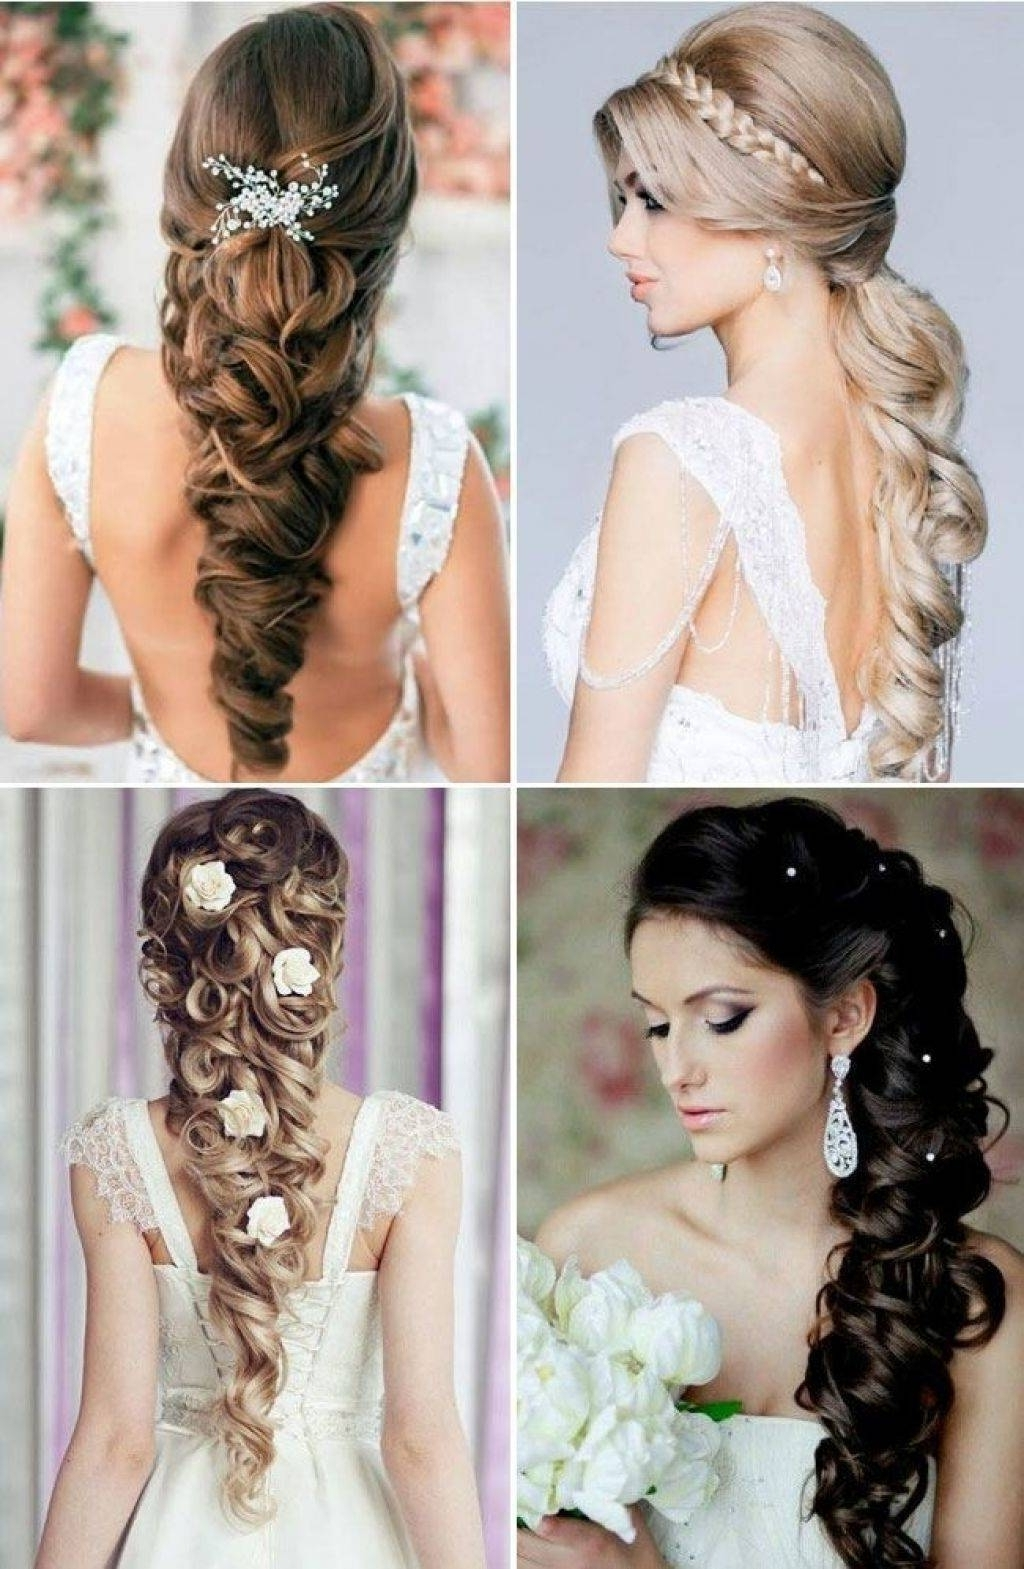 Most Popular Wedding Hairstyles For Really Long Hair Inside The Long Hairstyle For Bride – Hairstyle (View 11 of 15)